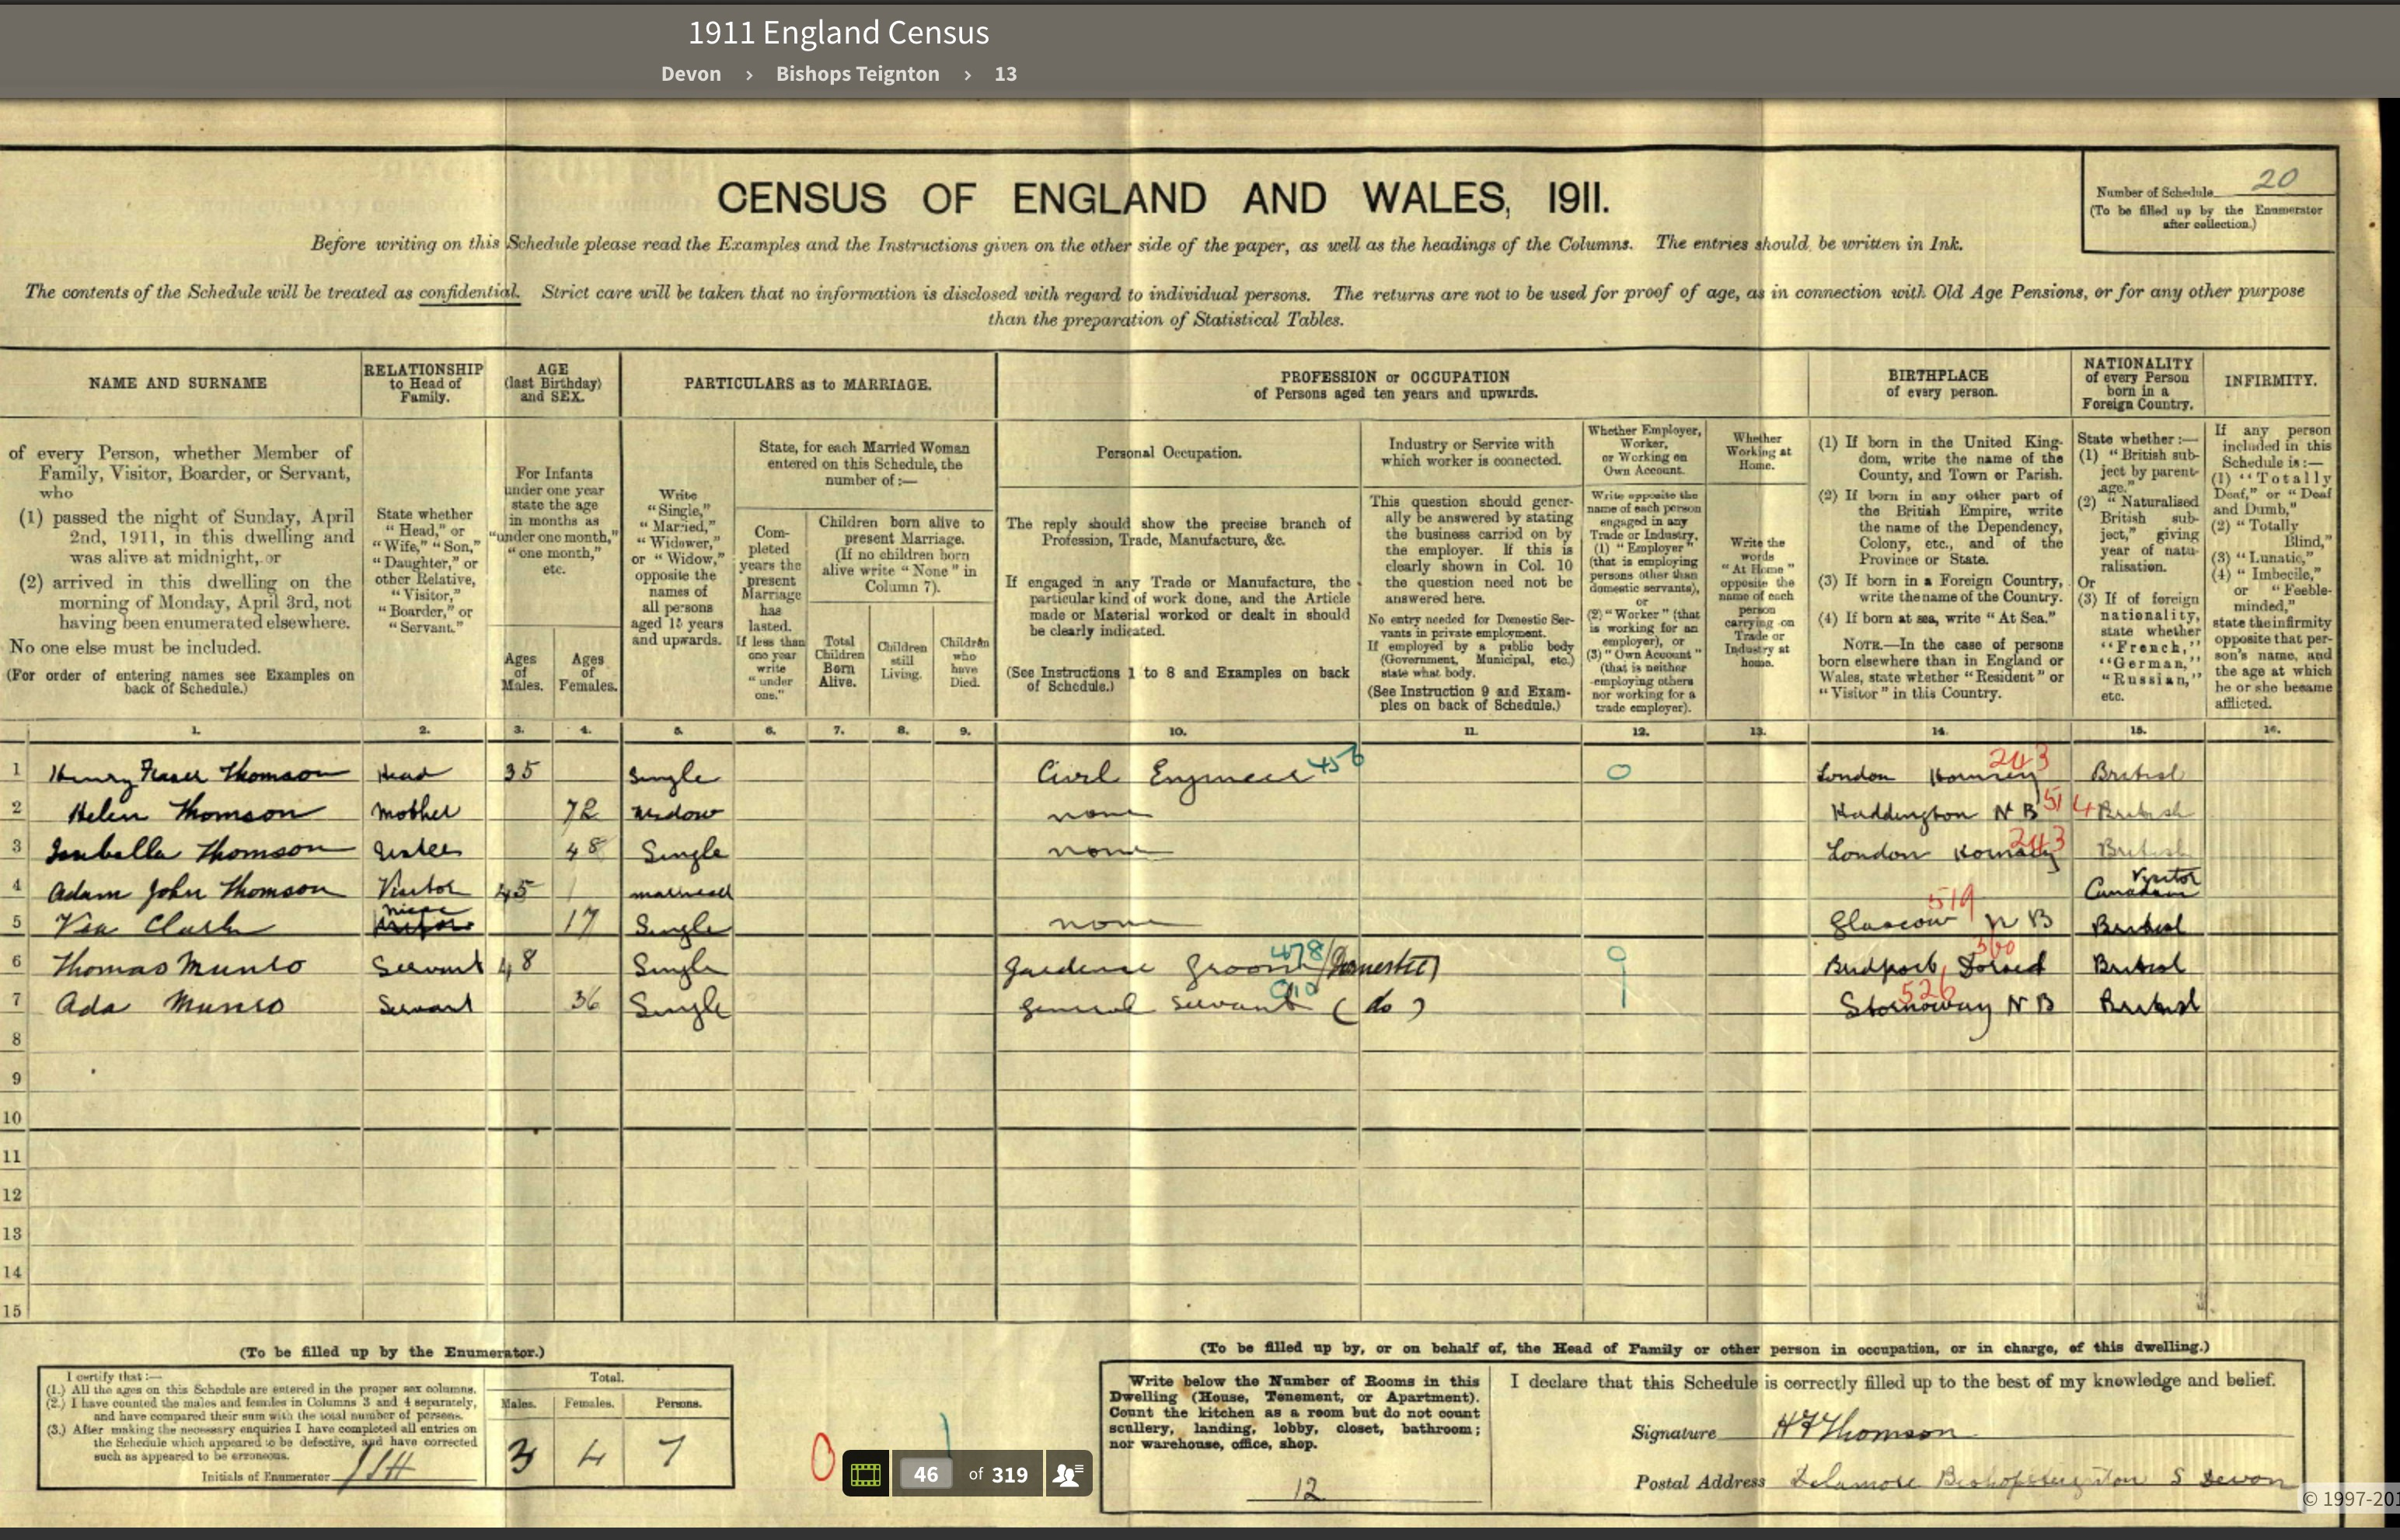 1911 CENSUS DELAMORE